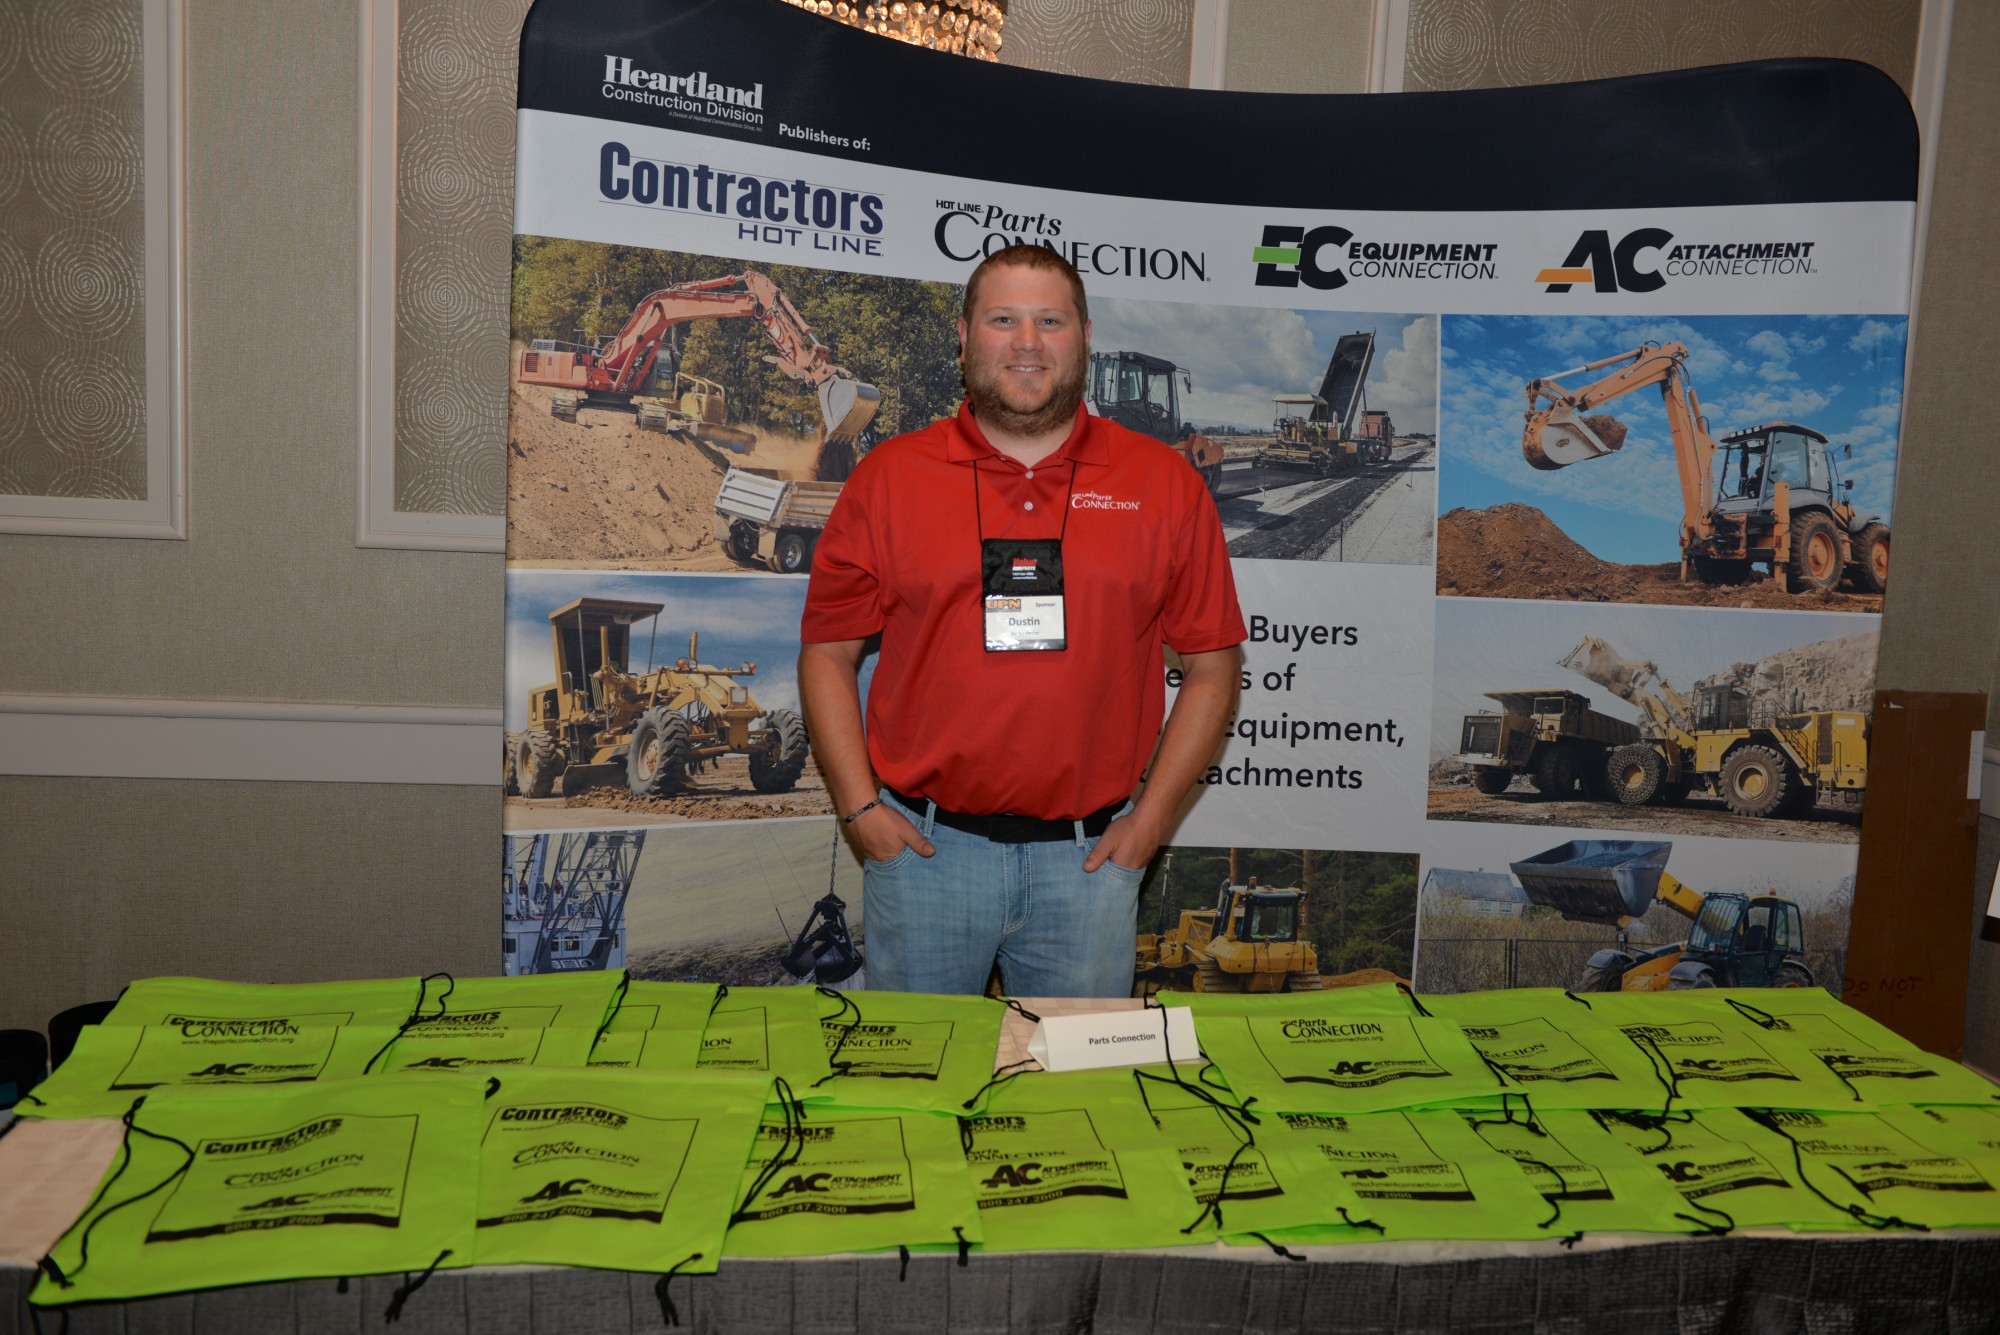 upn convention, resources, professionals, development, network, paint valley equipment